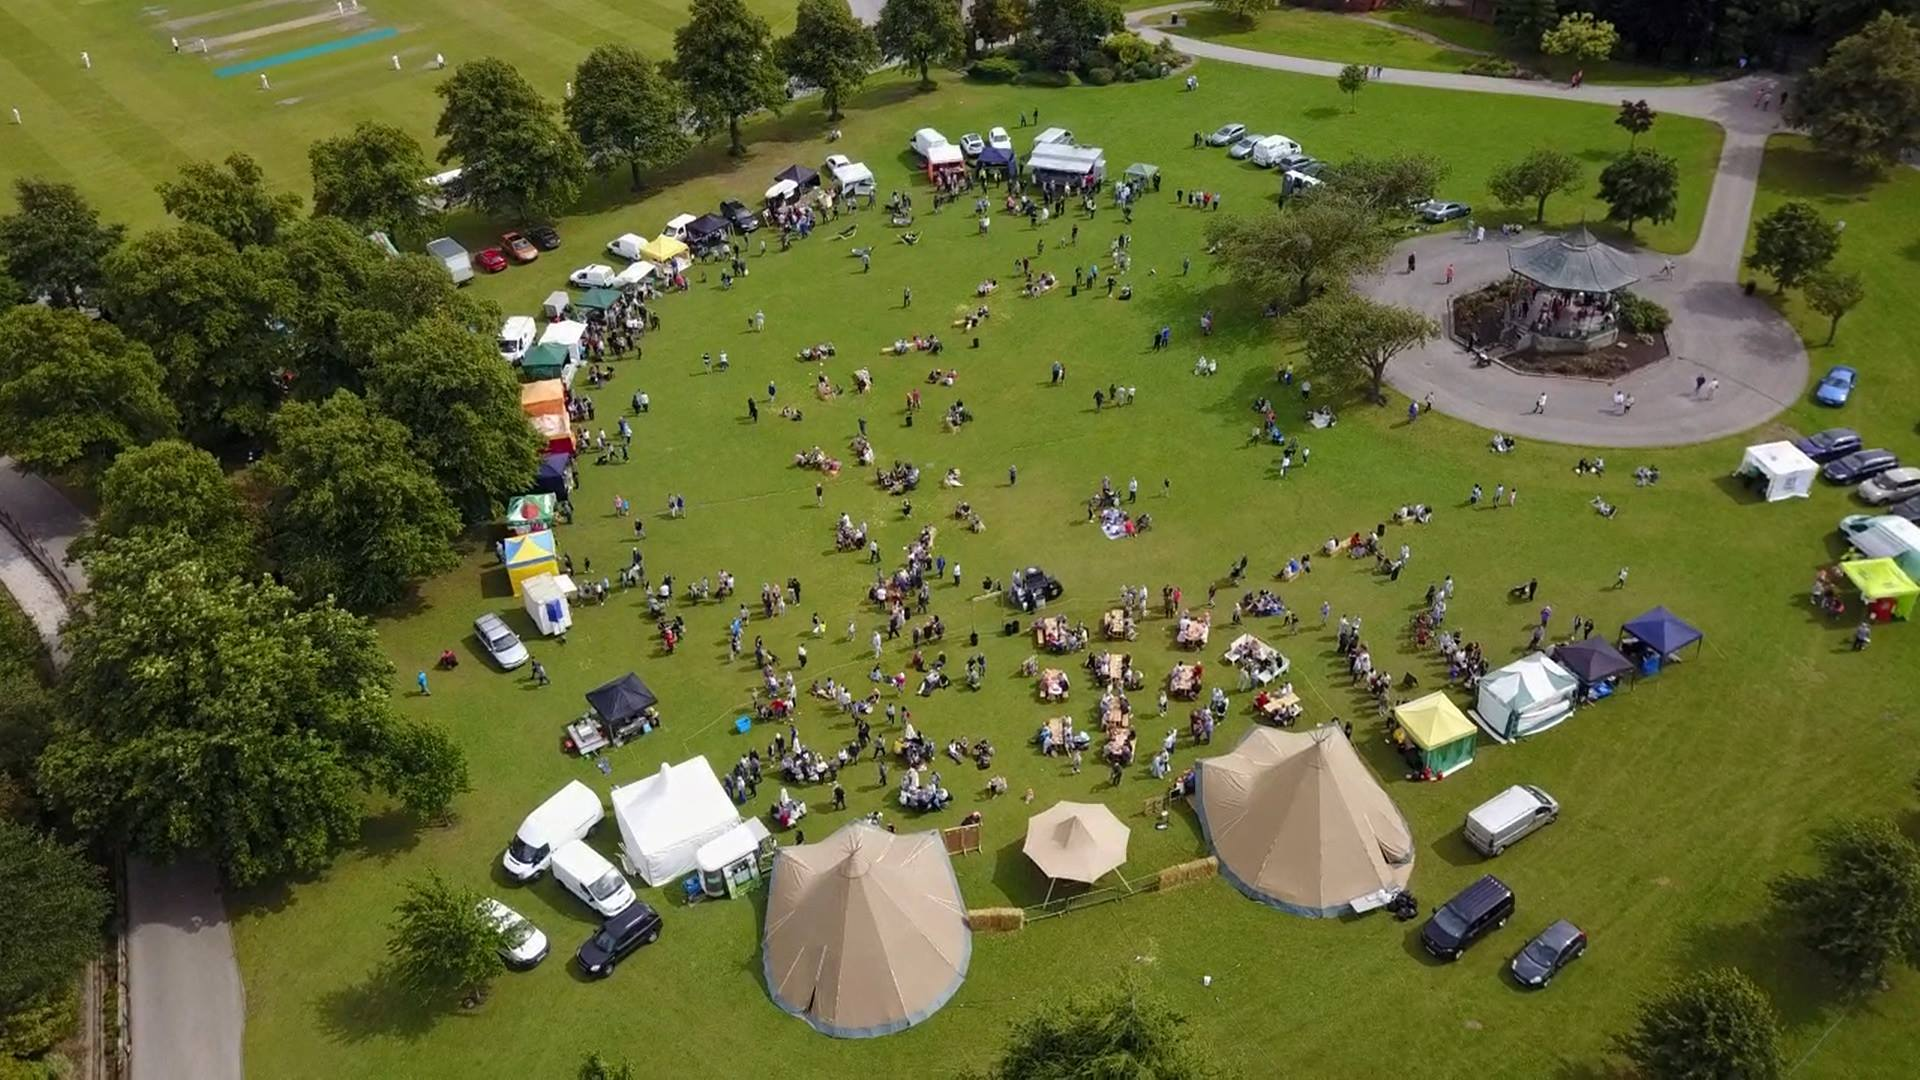 UK-Events-August-Chesterfield-Food-and-Drink-Festival